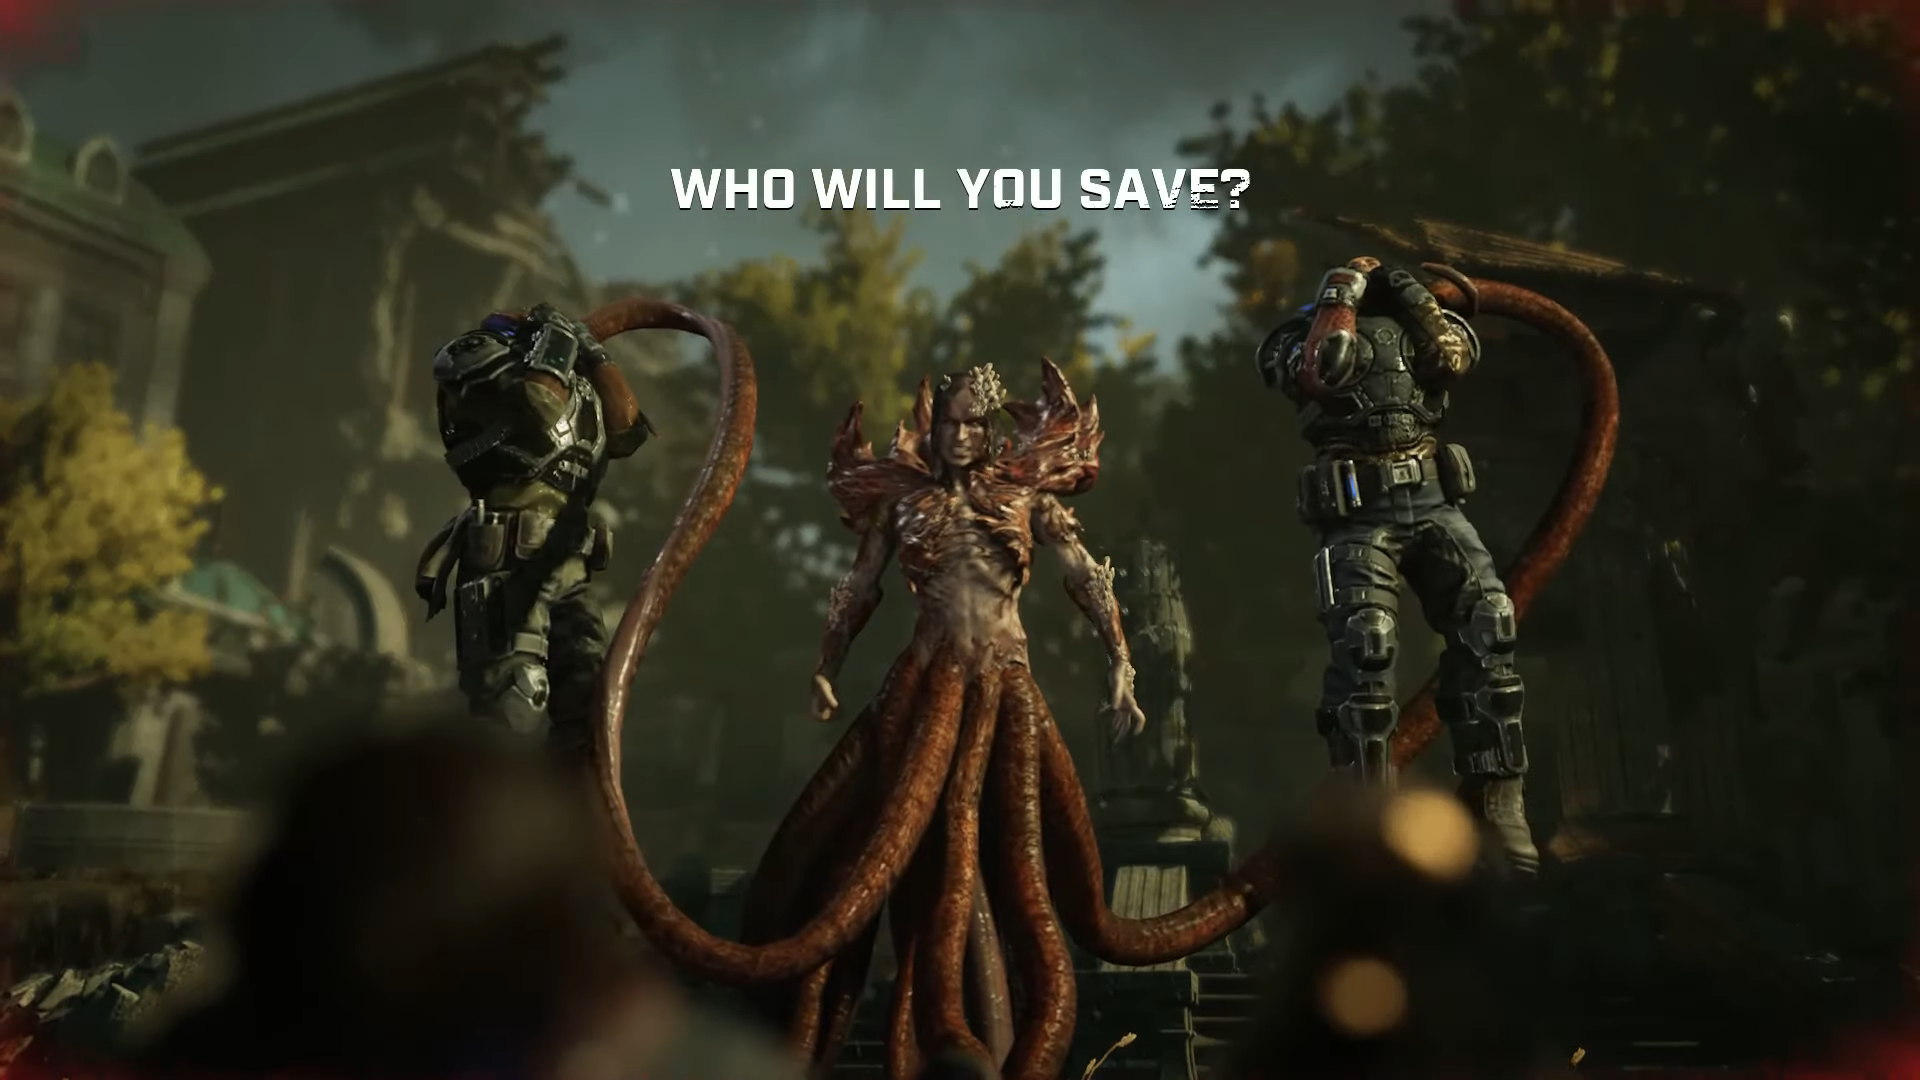 Gears 5 Jd Or Del Who To Save In Act 4 And What The Consequences Are Gamesradar Submitted 14 days ago by omgsoftcats. gears 5 jd or del who to save in act 4